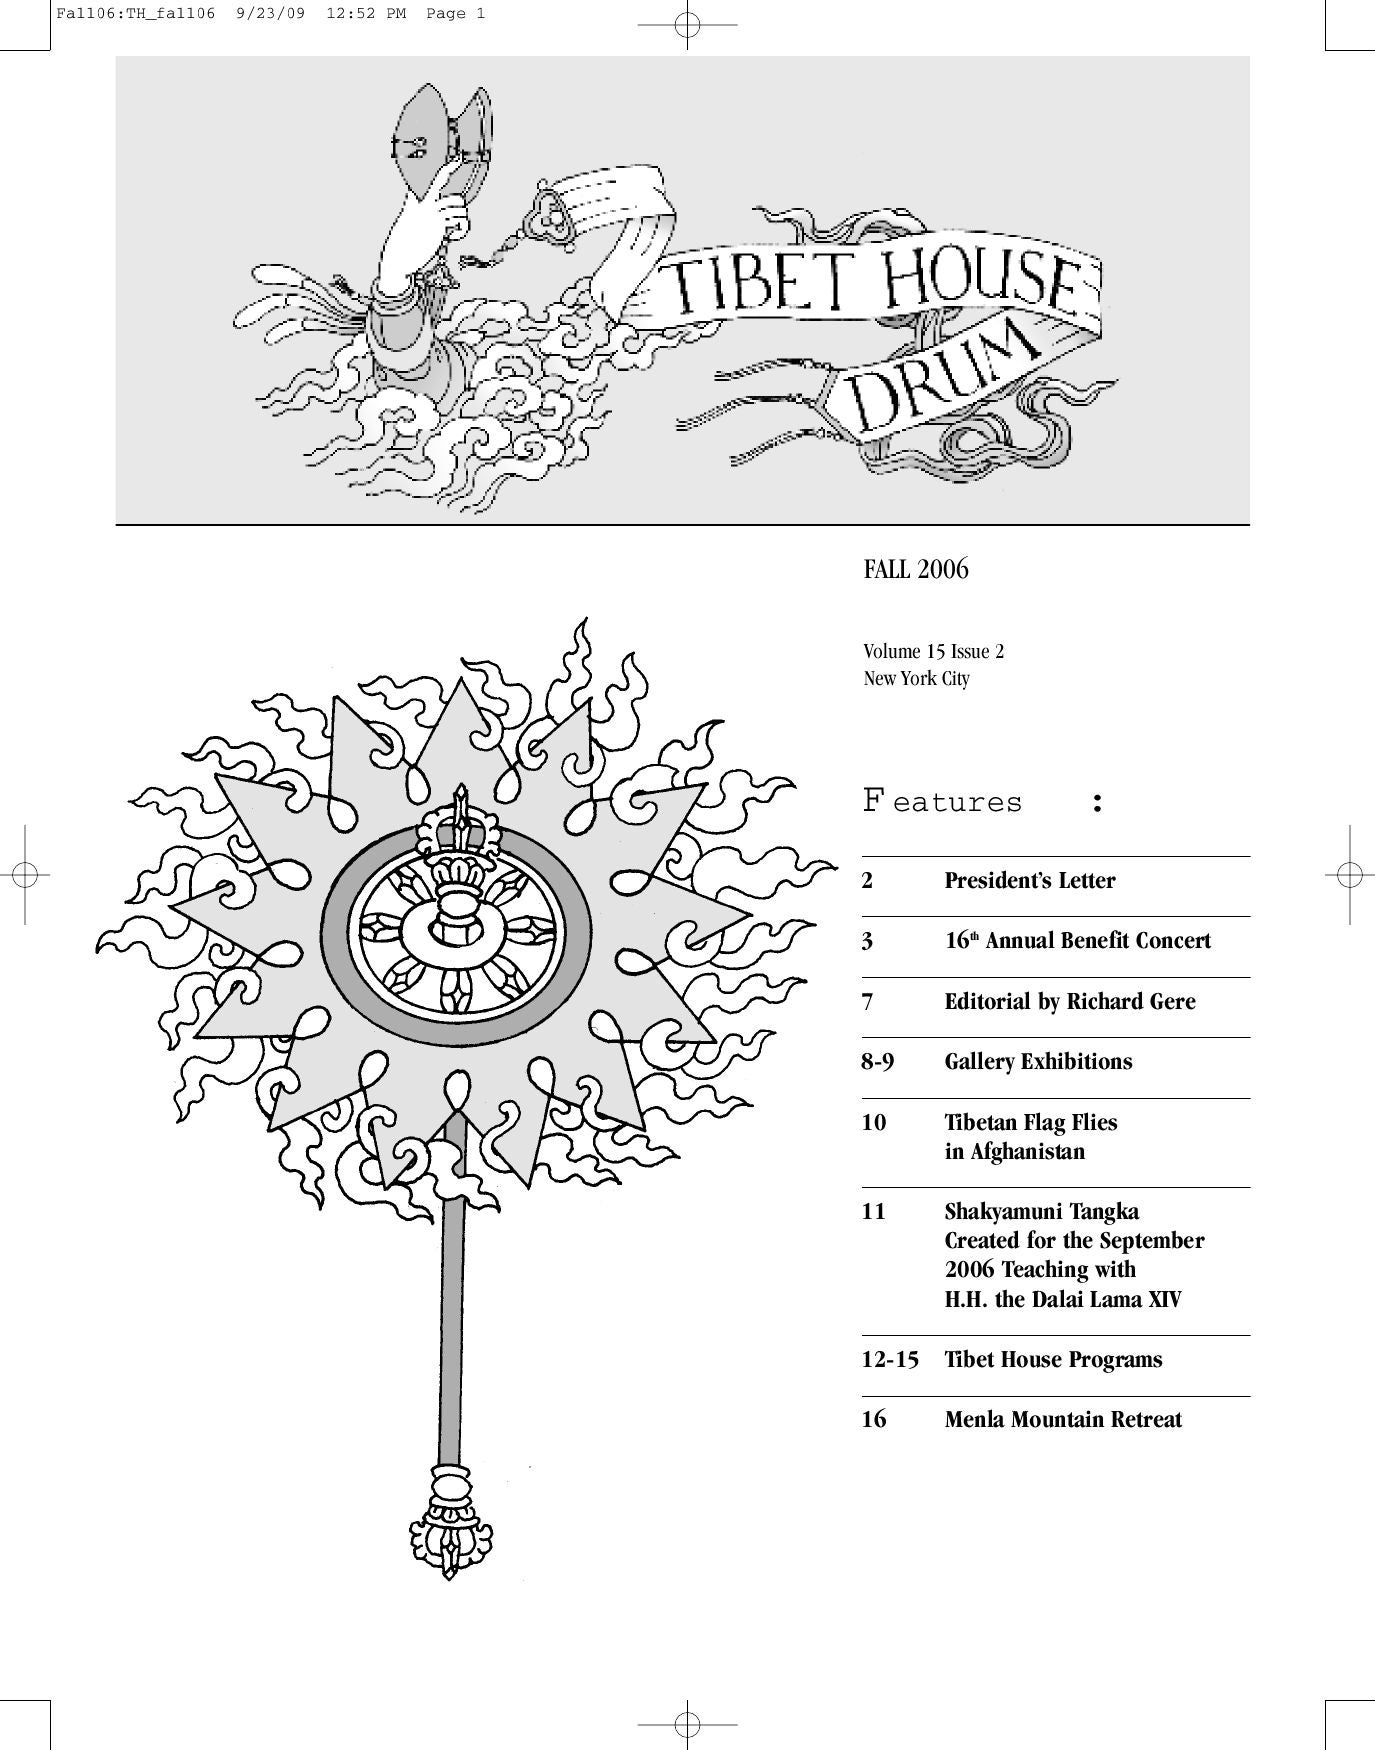 Fall 2006 Tibet House US Drum by Tibet House US - issuu